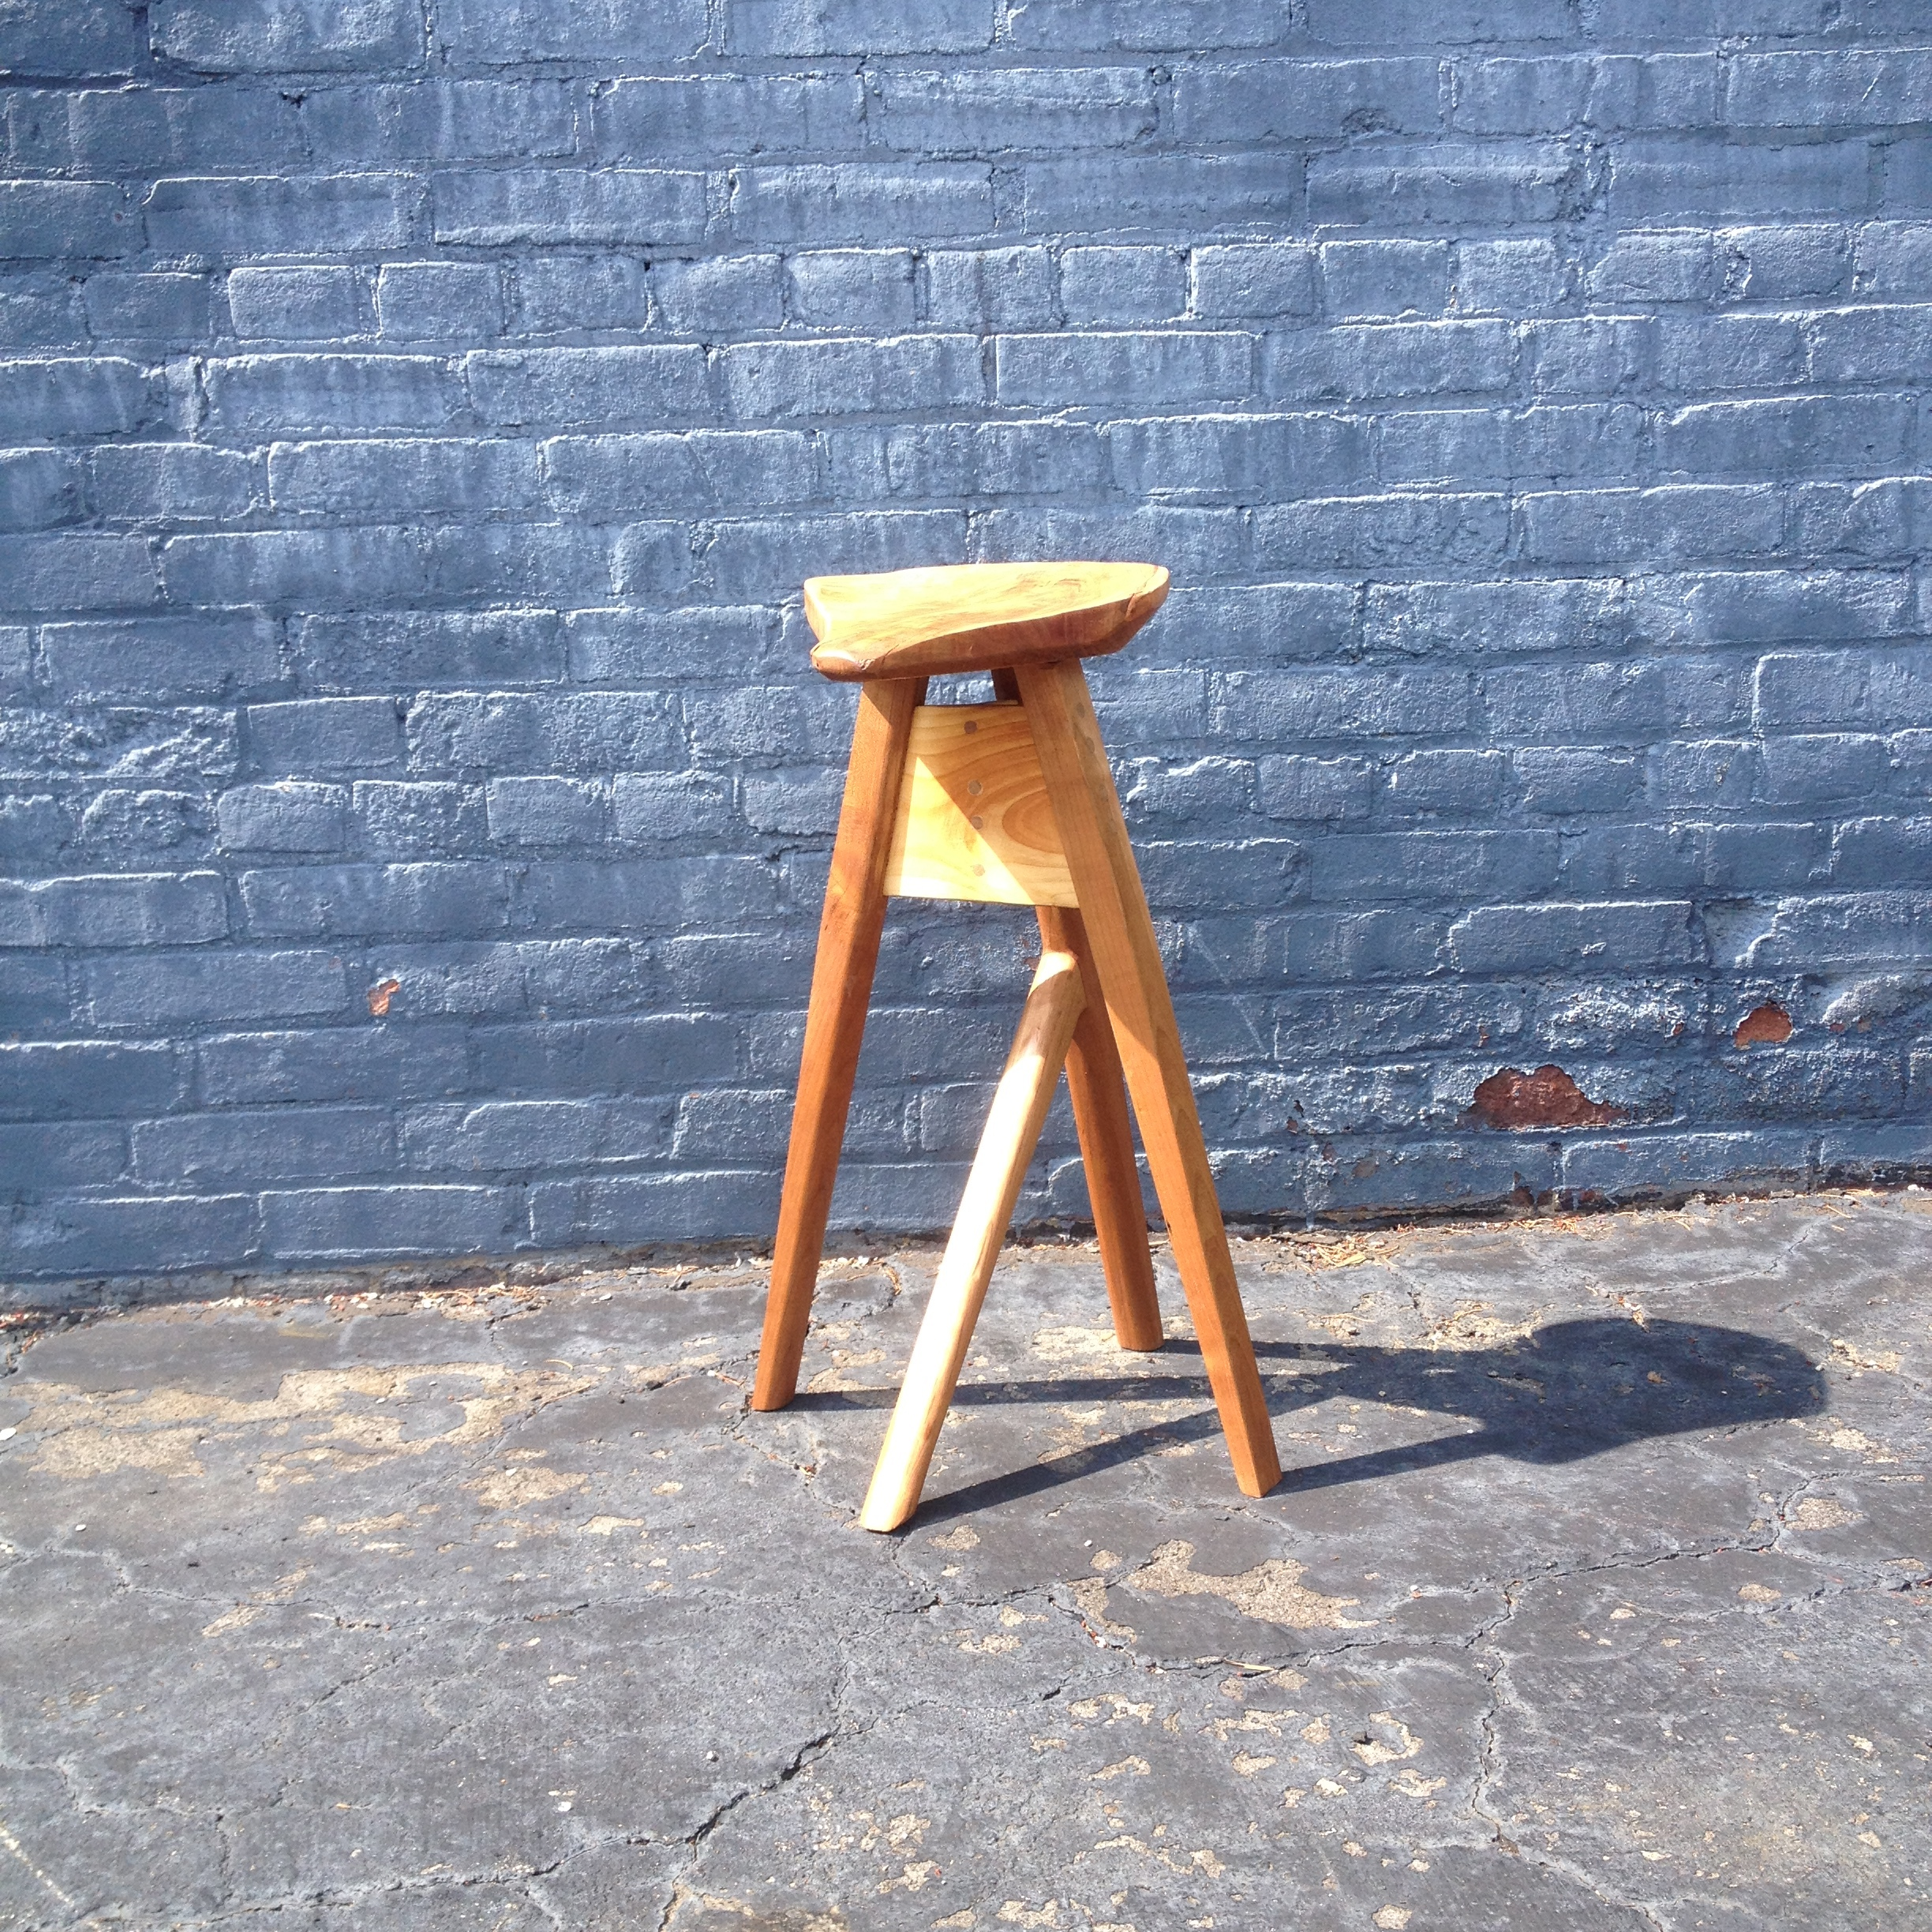 A weird stool I made just for shits. It's basically designed around my lack of wood at the time. The seat is a weird crotchy part of a log a friend gave me. I would like one day to make it again but... you know... better.